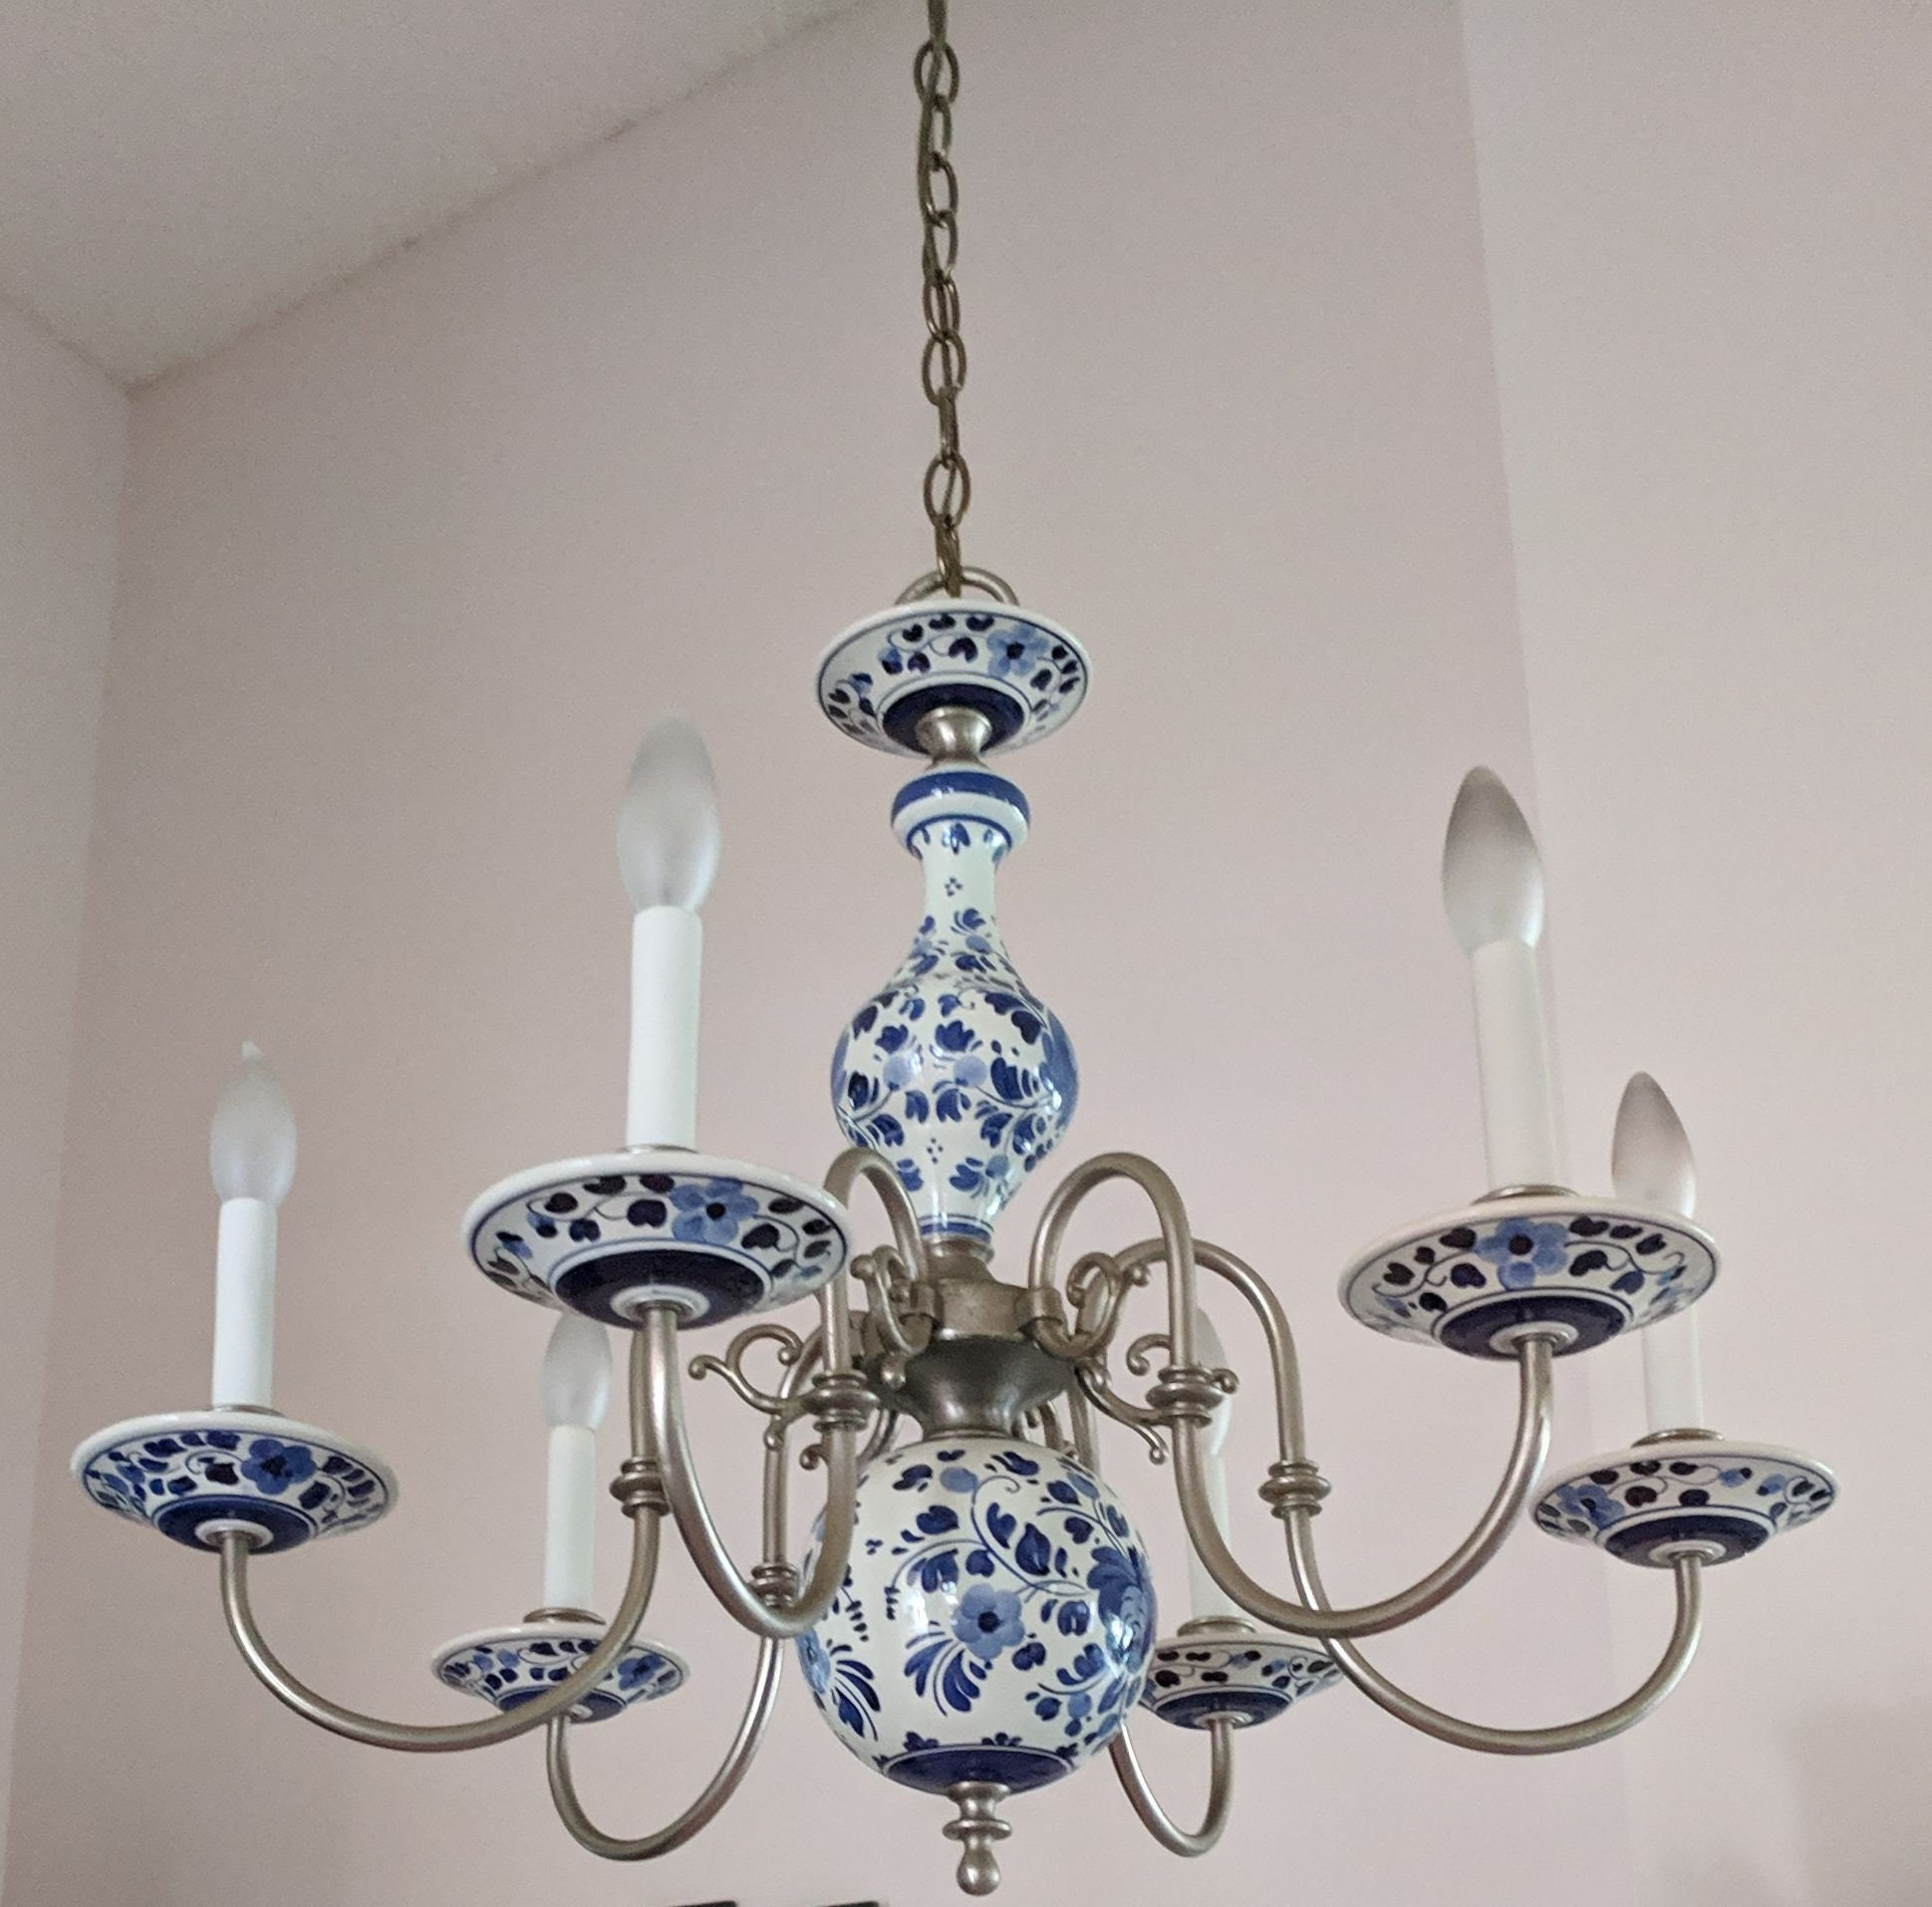 Delftware Six Arm Chandelier, Blue and White, Brushed Stainless Arms, Ceiling Plate and Long Chain